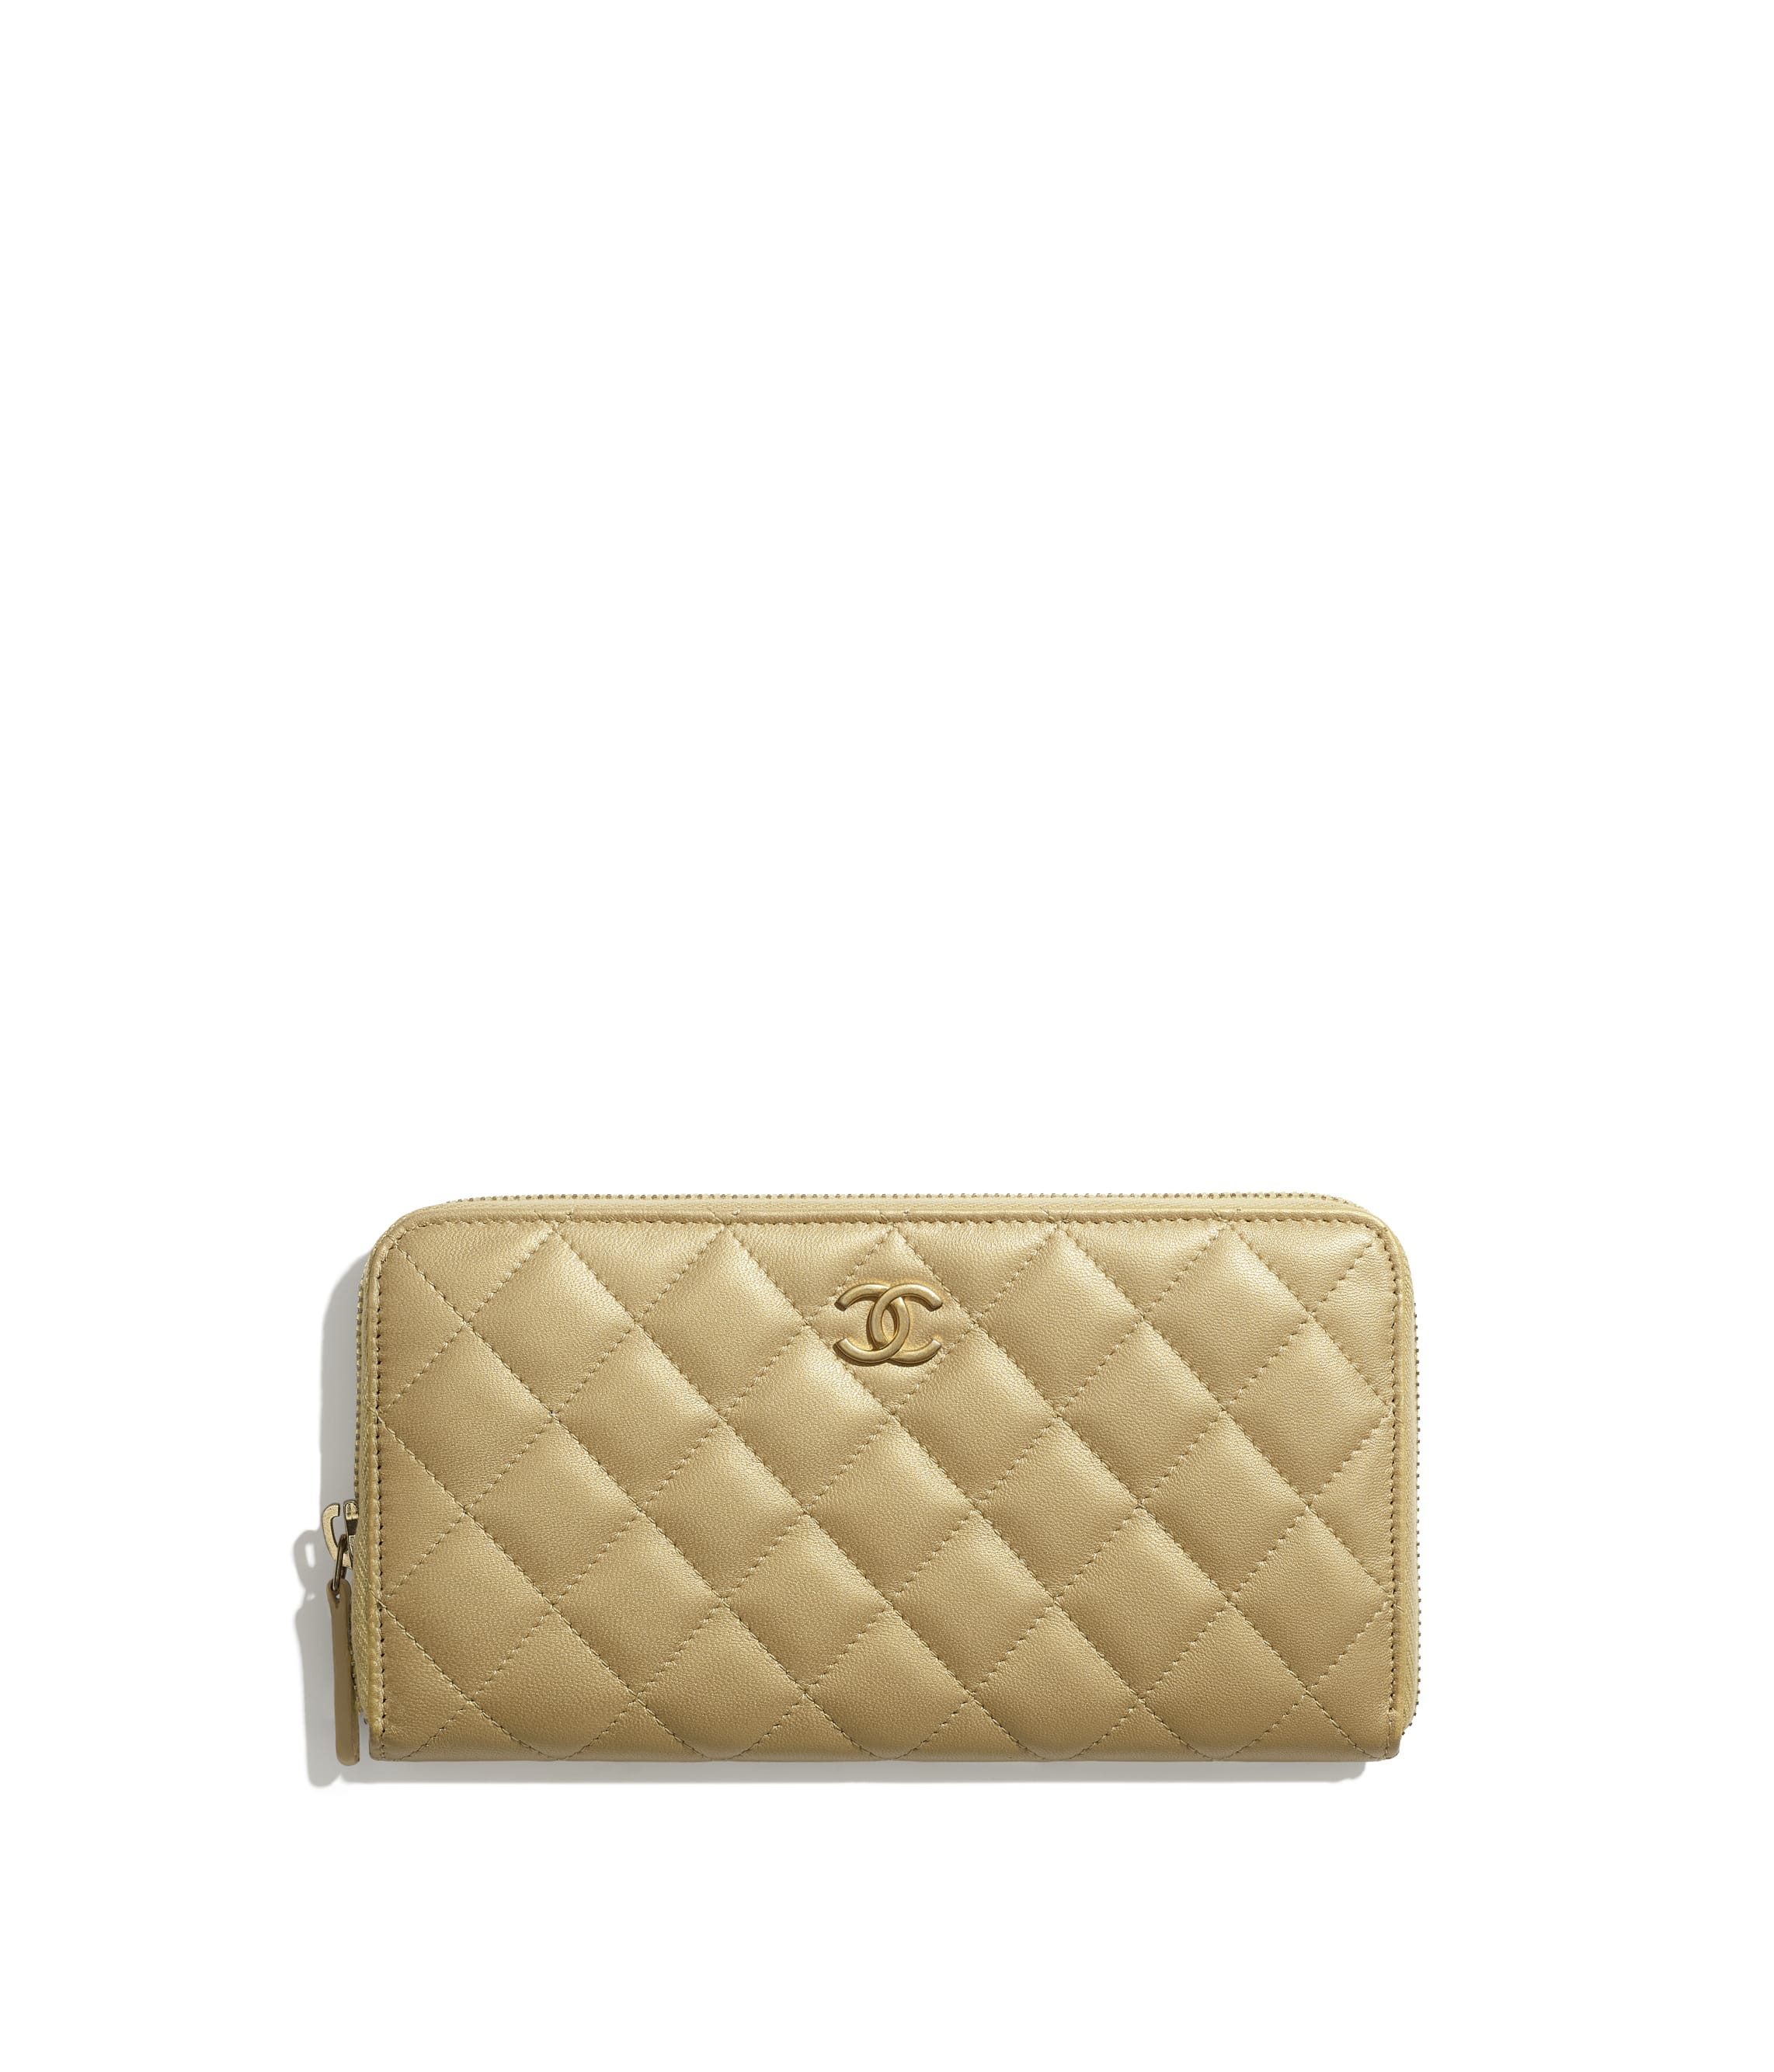 872429960d6a Long Wallets - Small Leather Goods - CHANEL